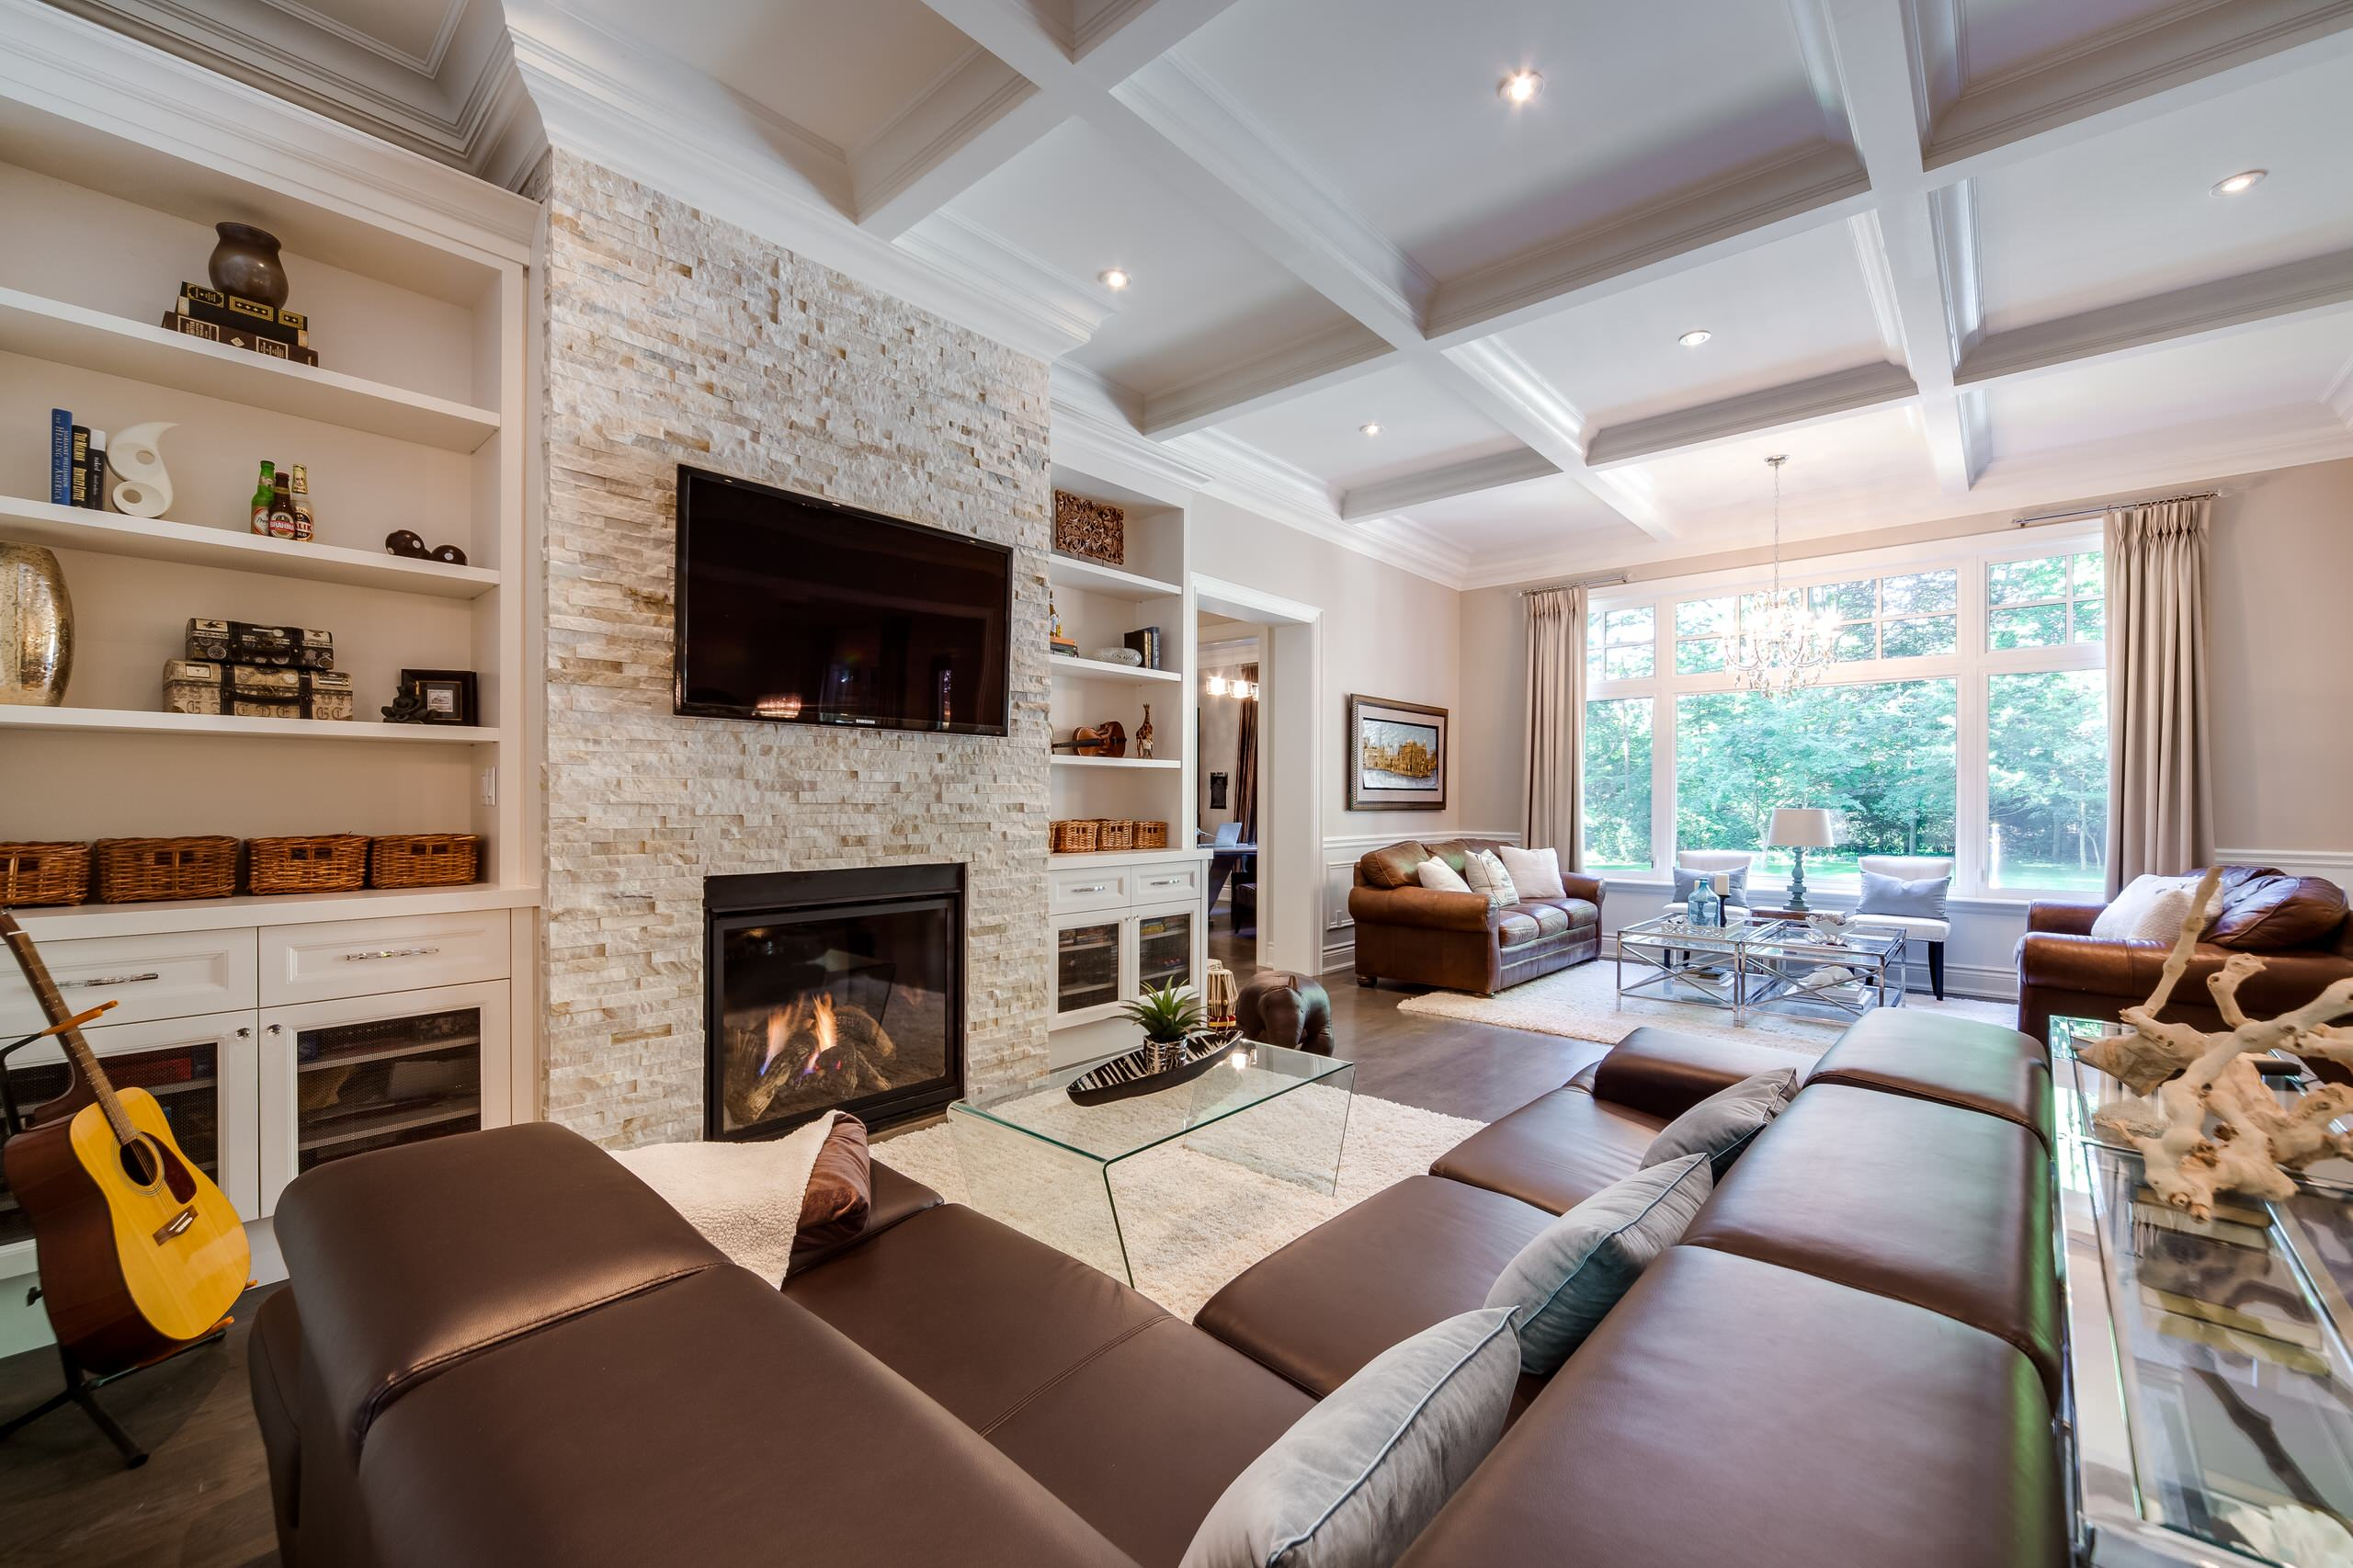 Stone Tv Fireplace Ideas Cozy Country Cottage Built In Bookshelves Bookshelf Moulding Living Room Waffle Ceiling